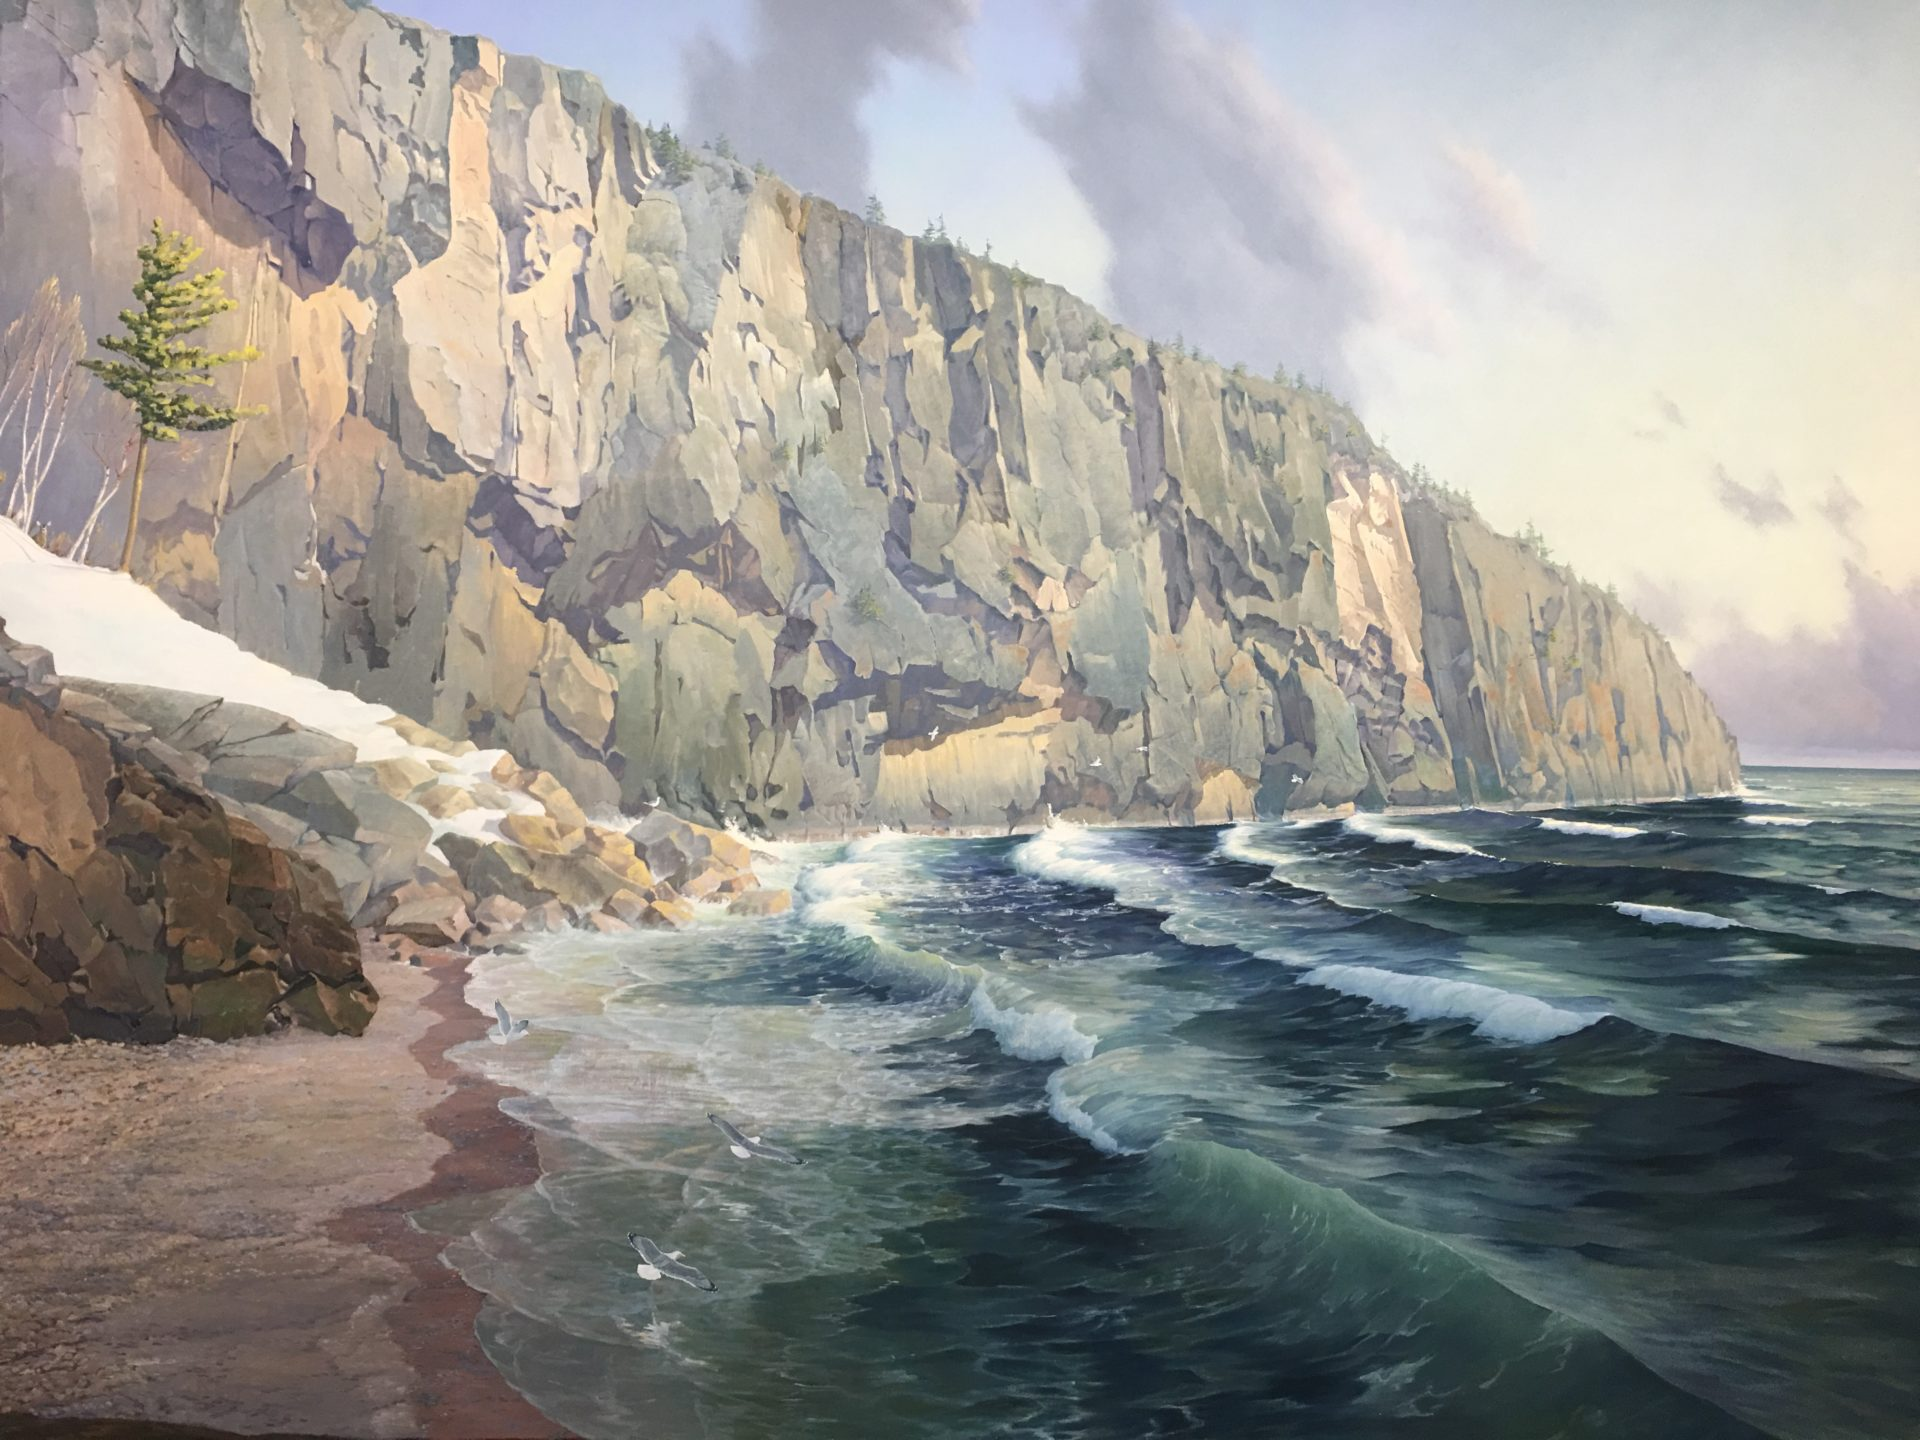 expansive shovel point painting, depicts cliffs and blue-green waves with white caps lapping onto the pebbly beach